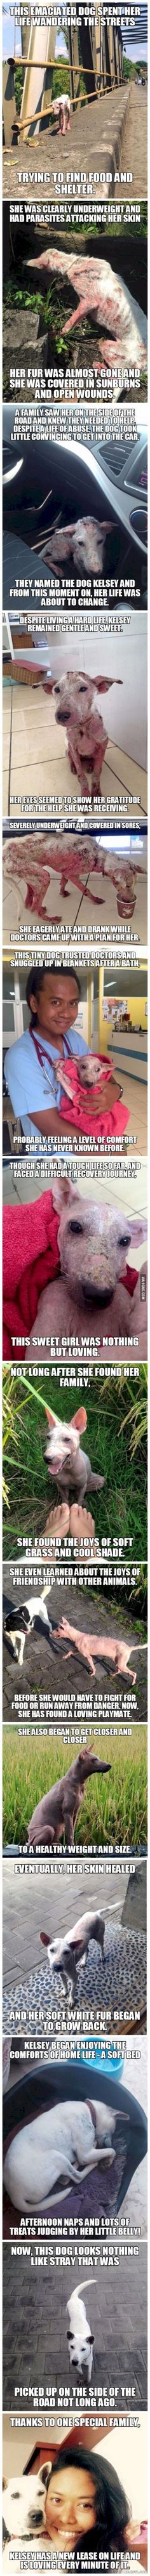 A story of a stray dog... -faith in humanity restored.: